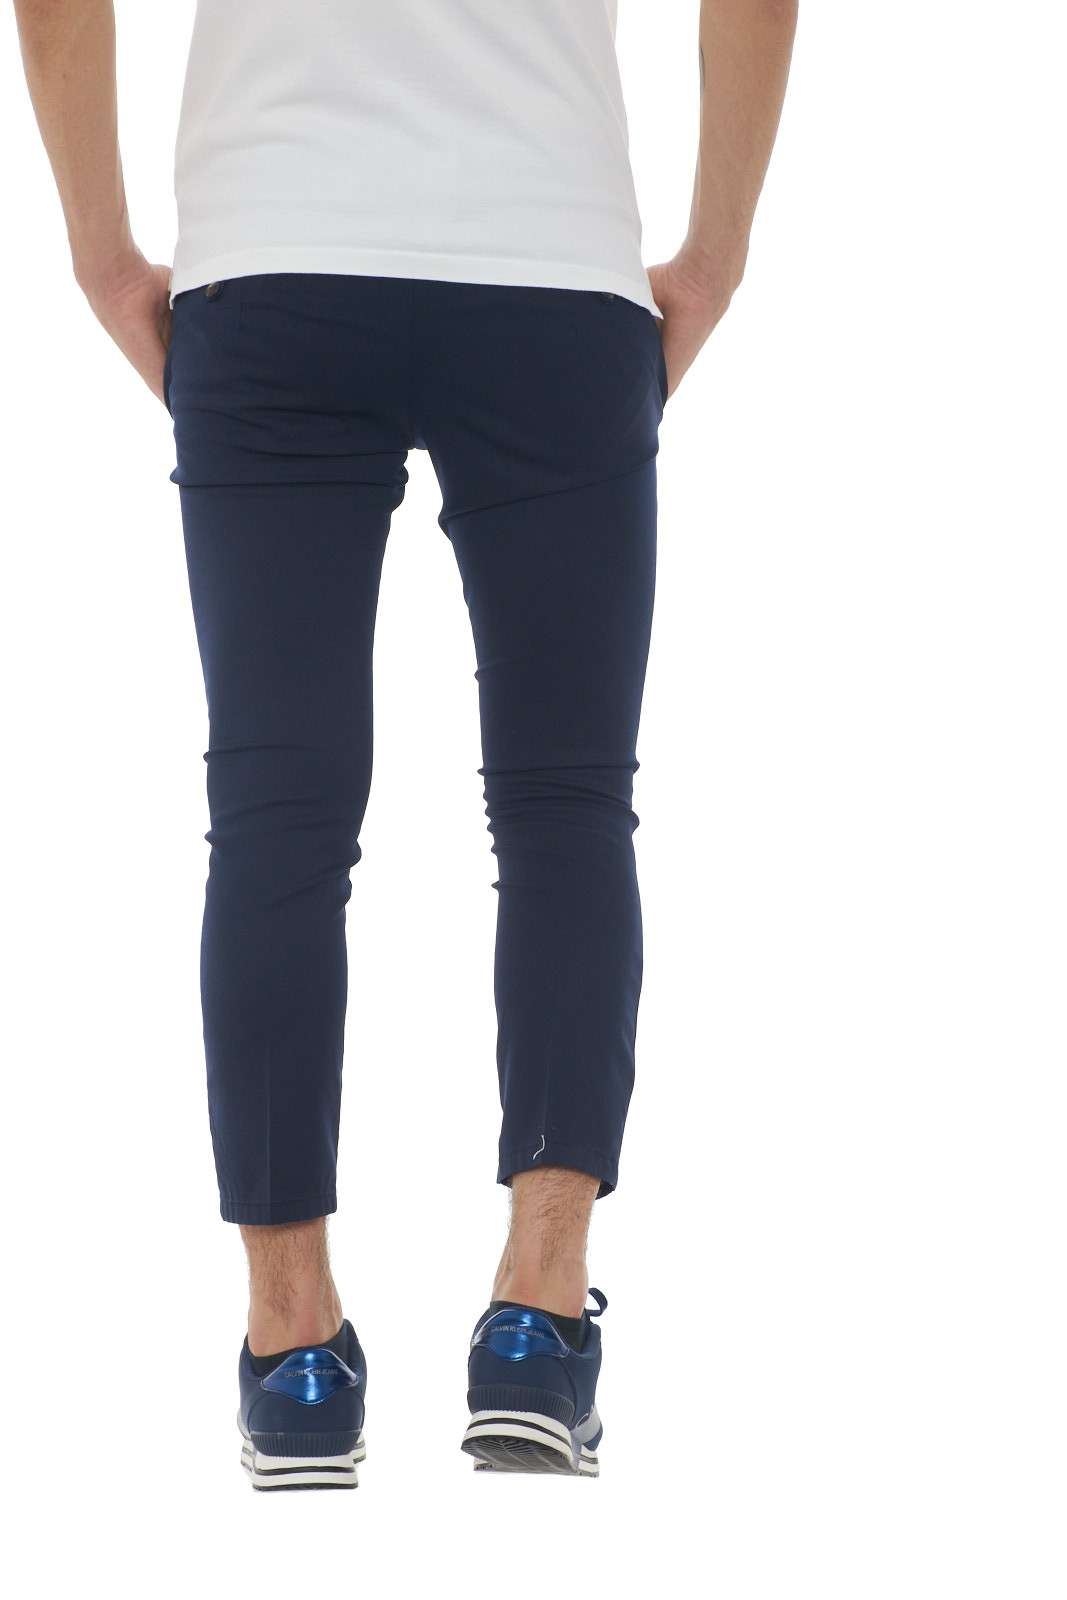 https://www.parmax.com/media/catalog/product/a/i/PE-outlet_parmax-pantaloni-uomo-Michael-Coal-CLARK3361-C.jpg